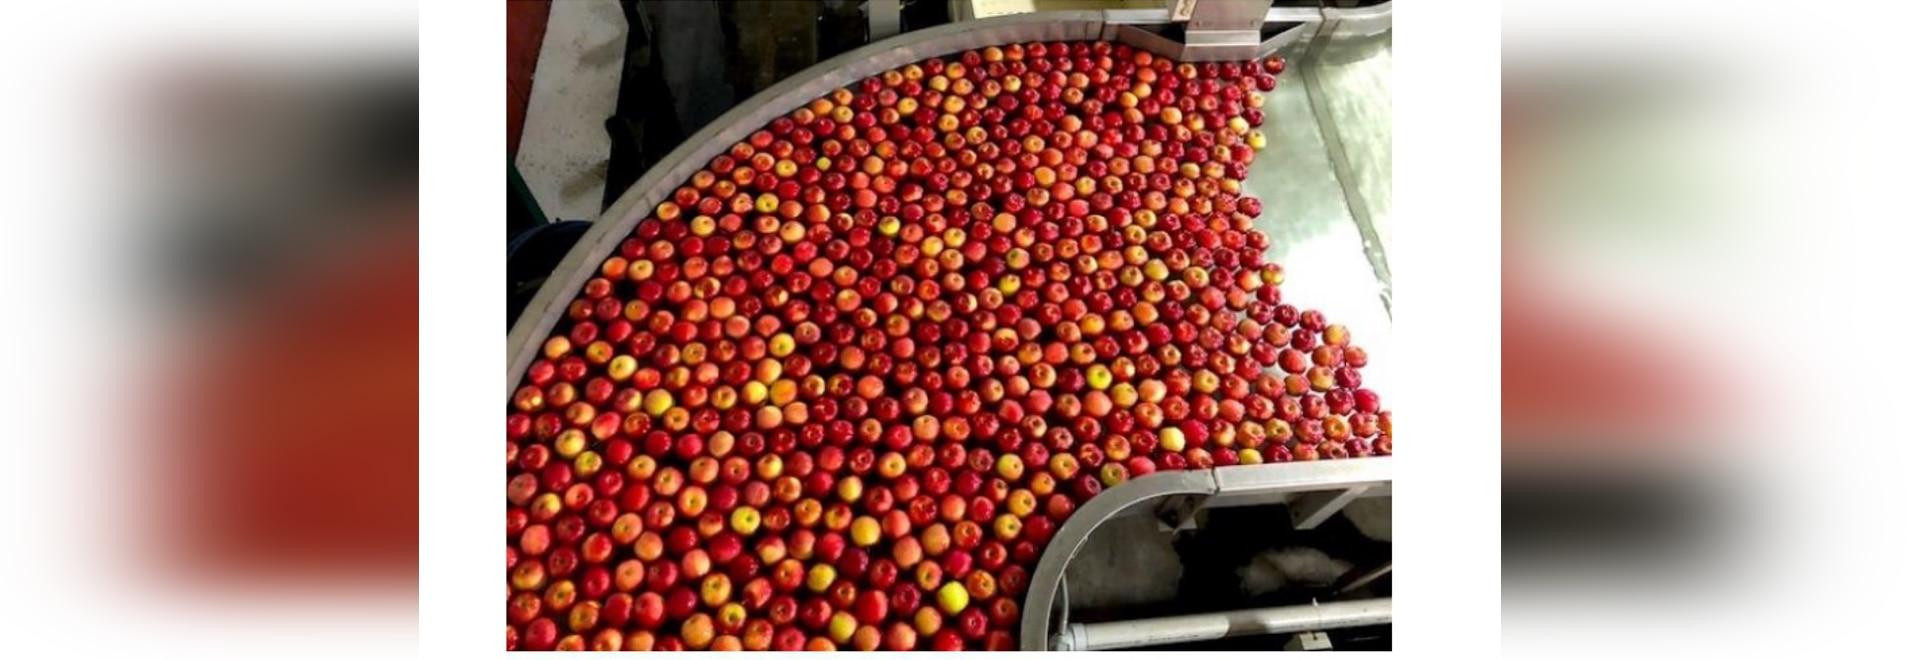 Visitors in a private tour of Pomona Packing in Wolcott, N.Y., saw how the apple-sorting lines worked using new technology to streamline the sorting and packing process. Pomona started in 2010 to s...